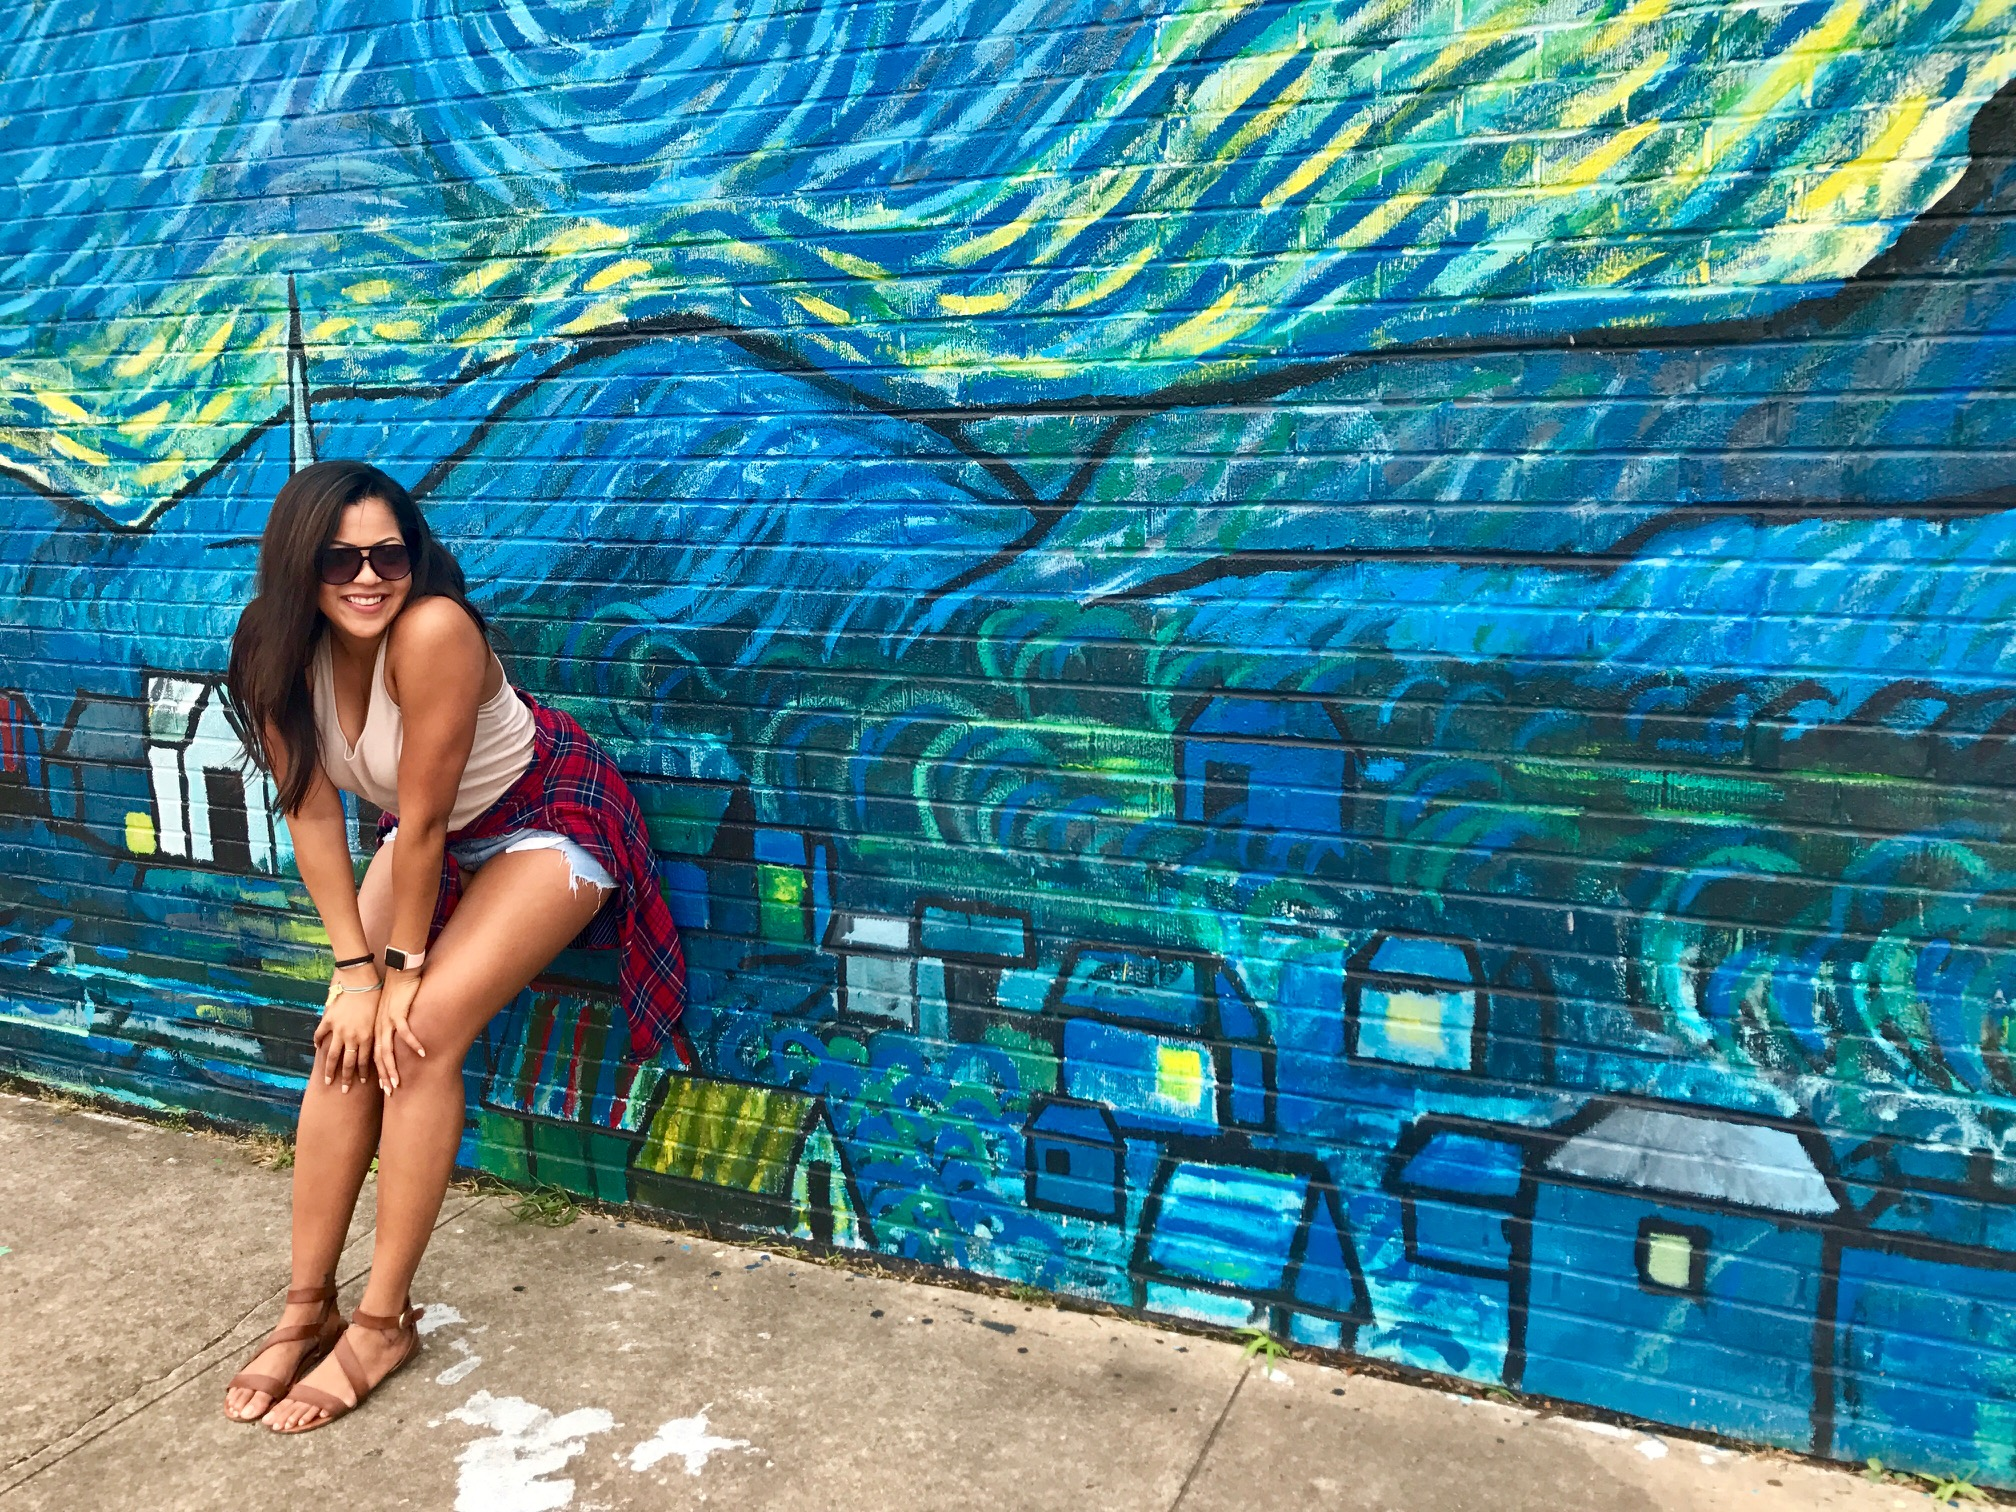 Waco has a lot of cool murals and places to take fun blog pics. This is a replica of 'Starry Night'